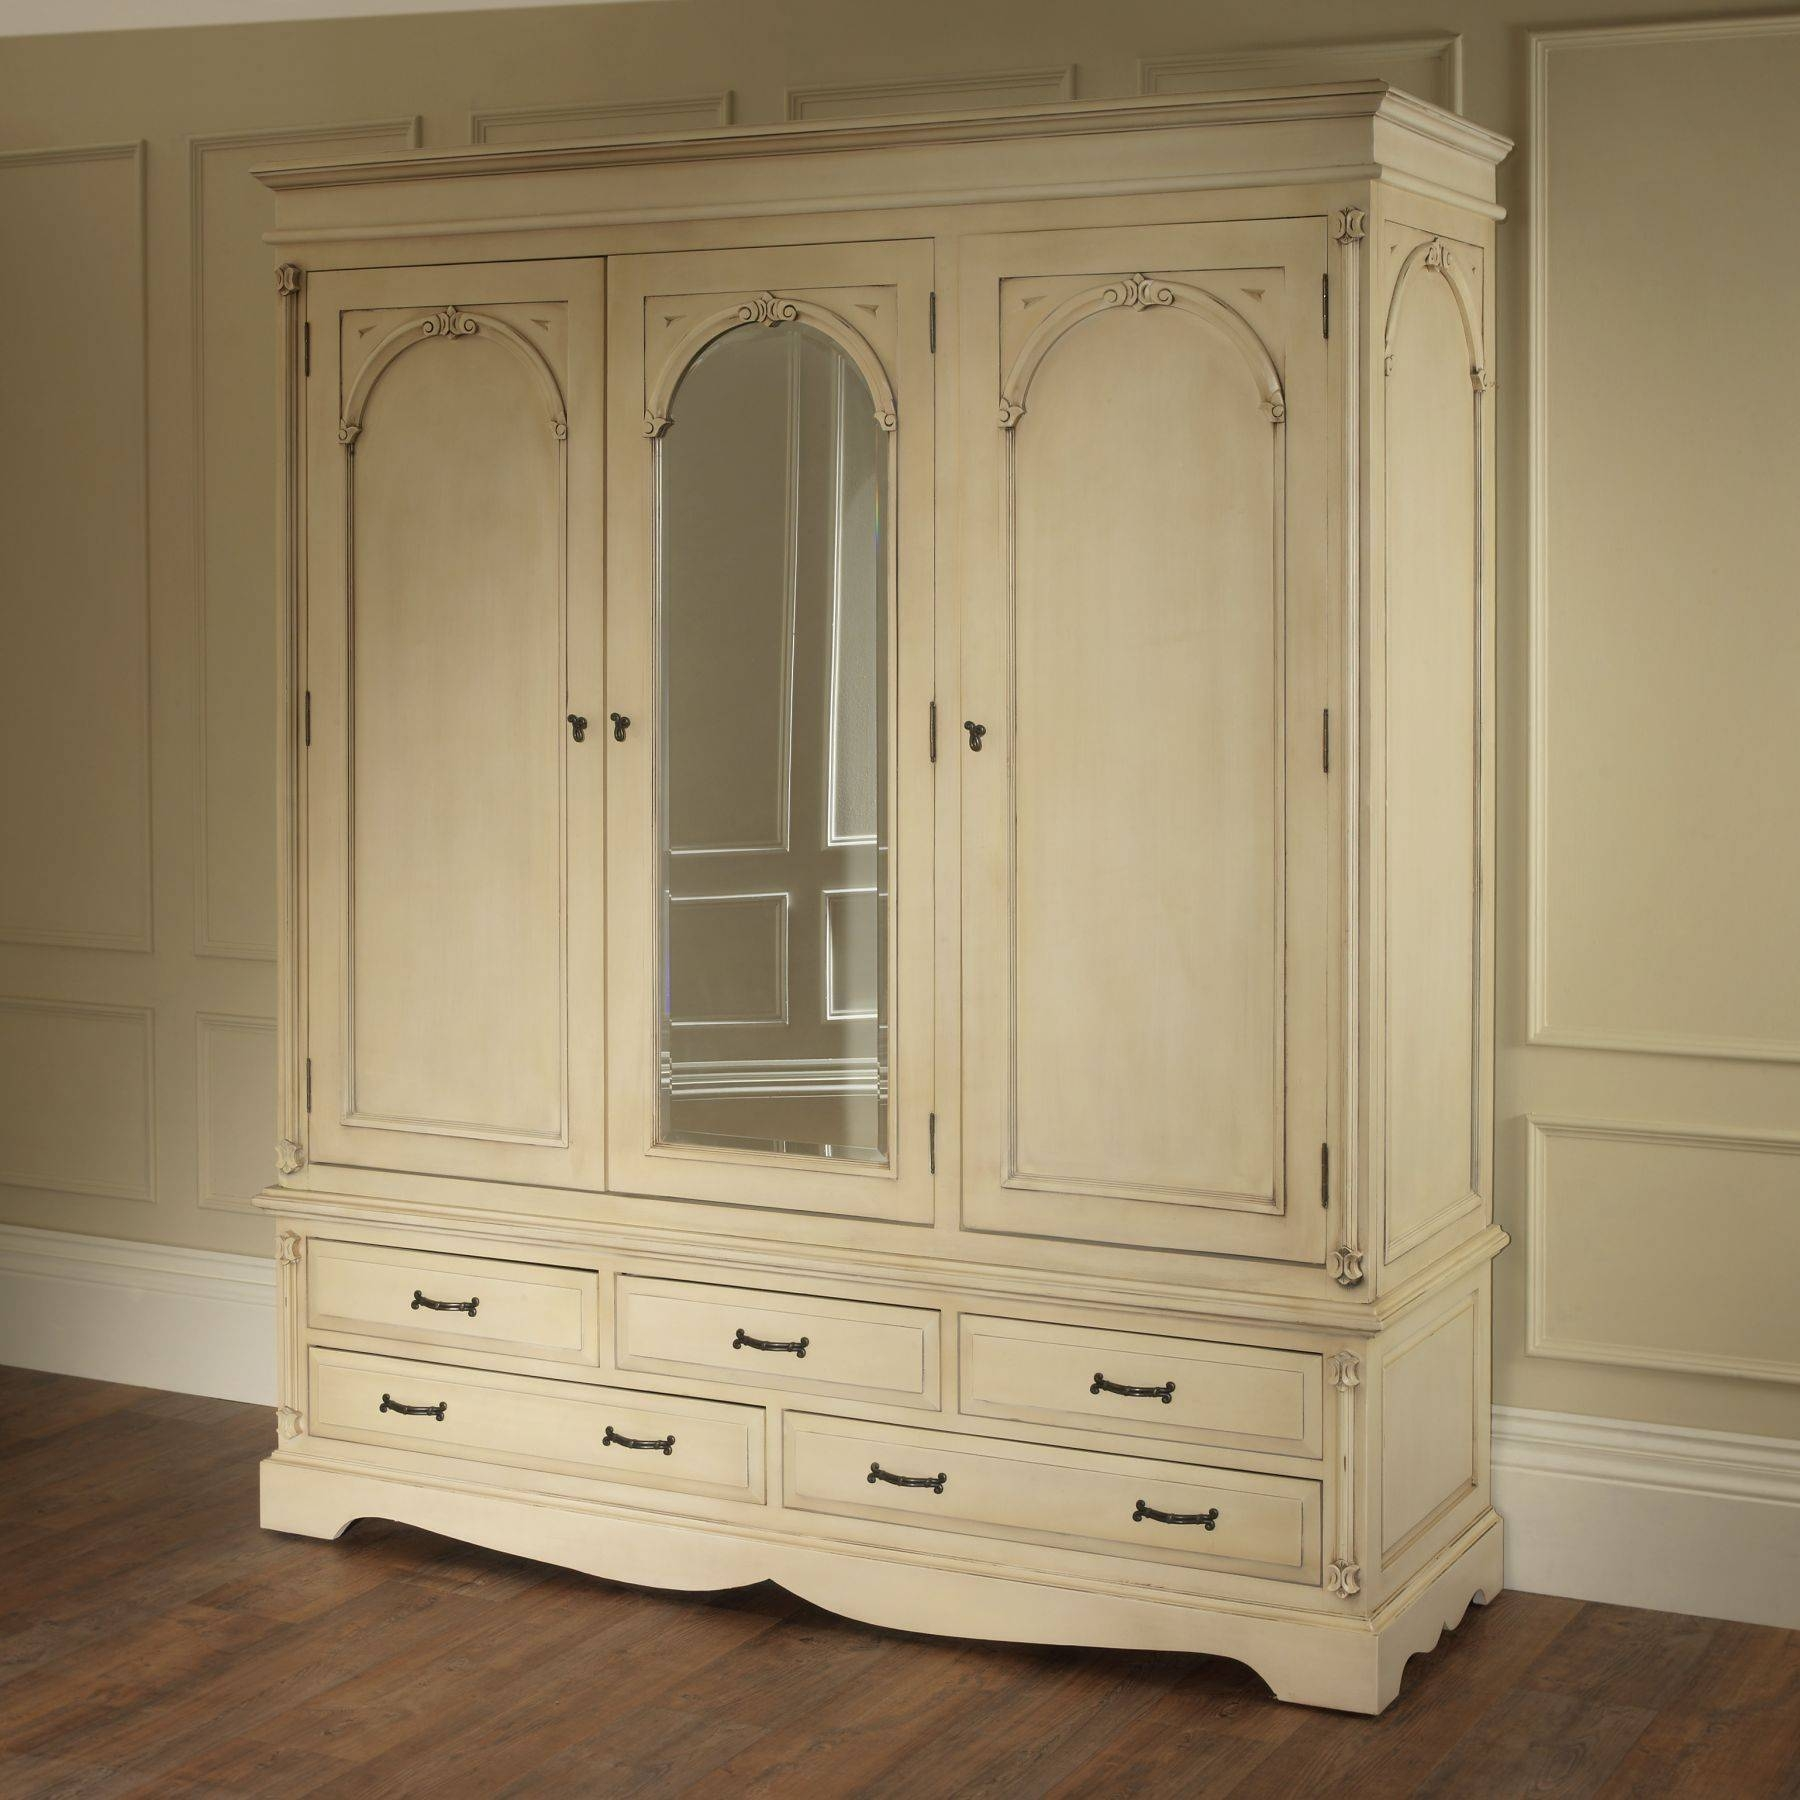 Bedroom: Interesting Brusali Wardrobe Cabinets For Your Bedroom Intended For Cream French Wardrobes (View 3 of 15)